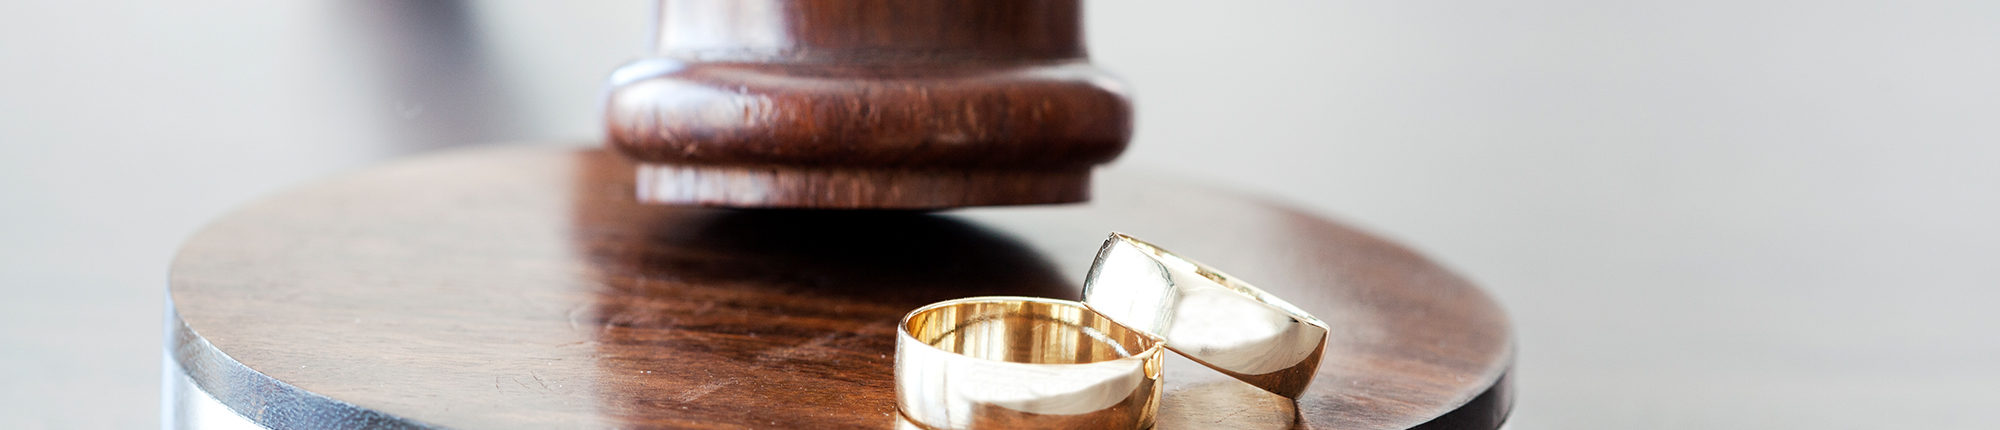 wedding rings picture close up